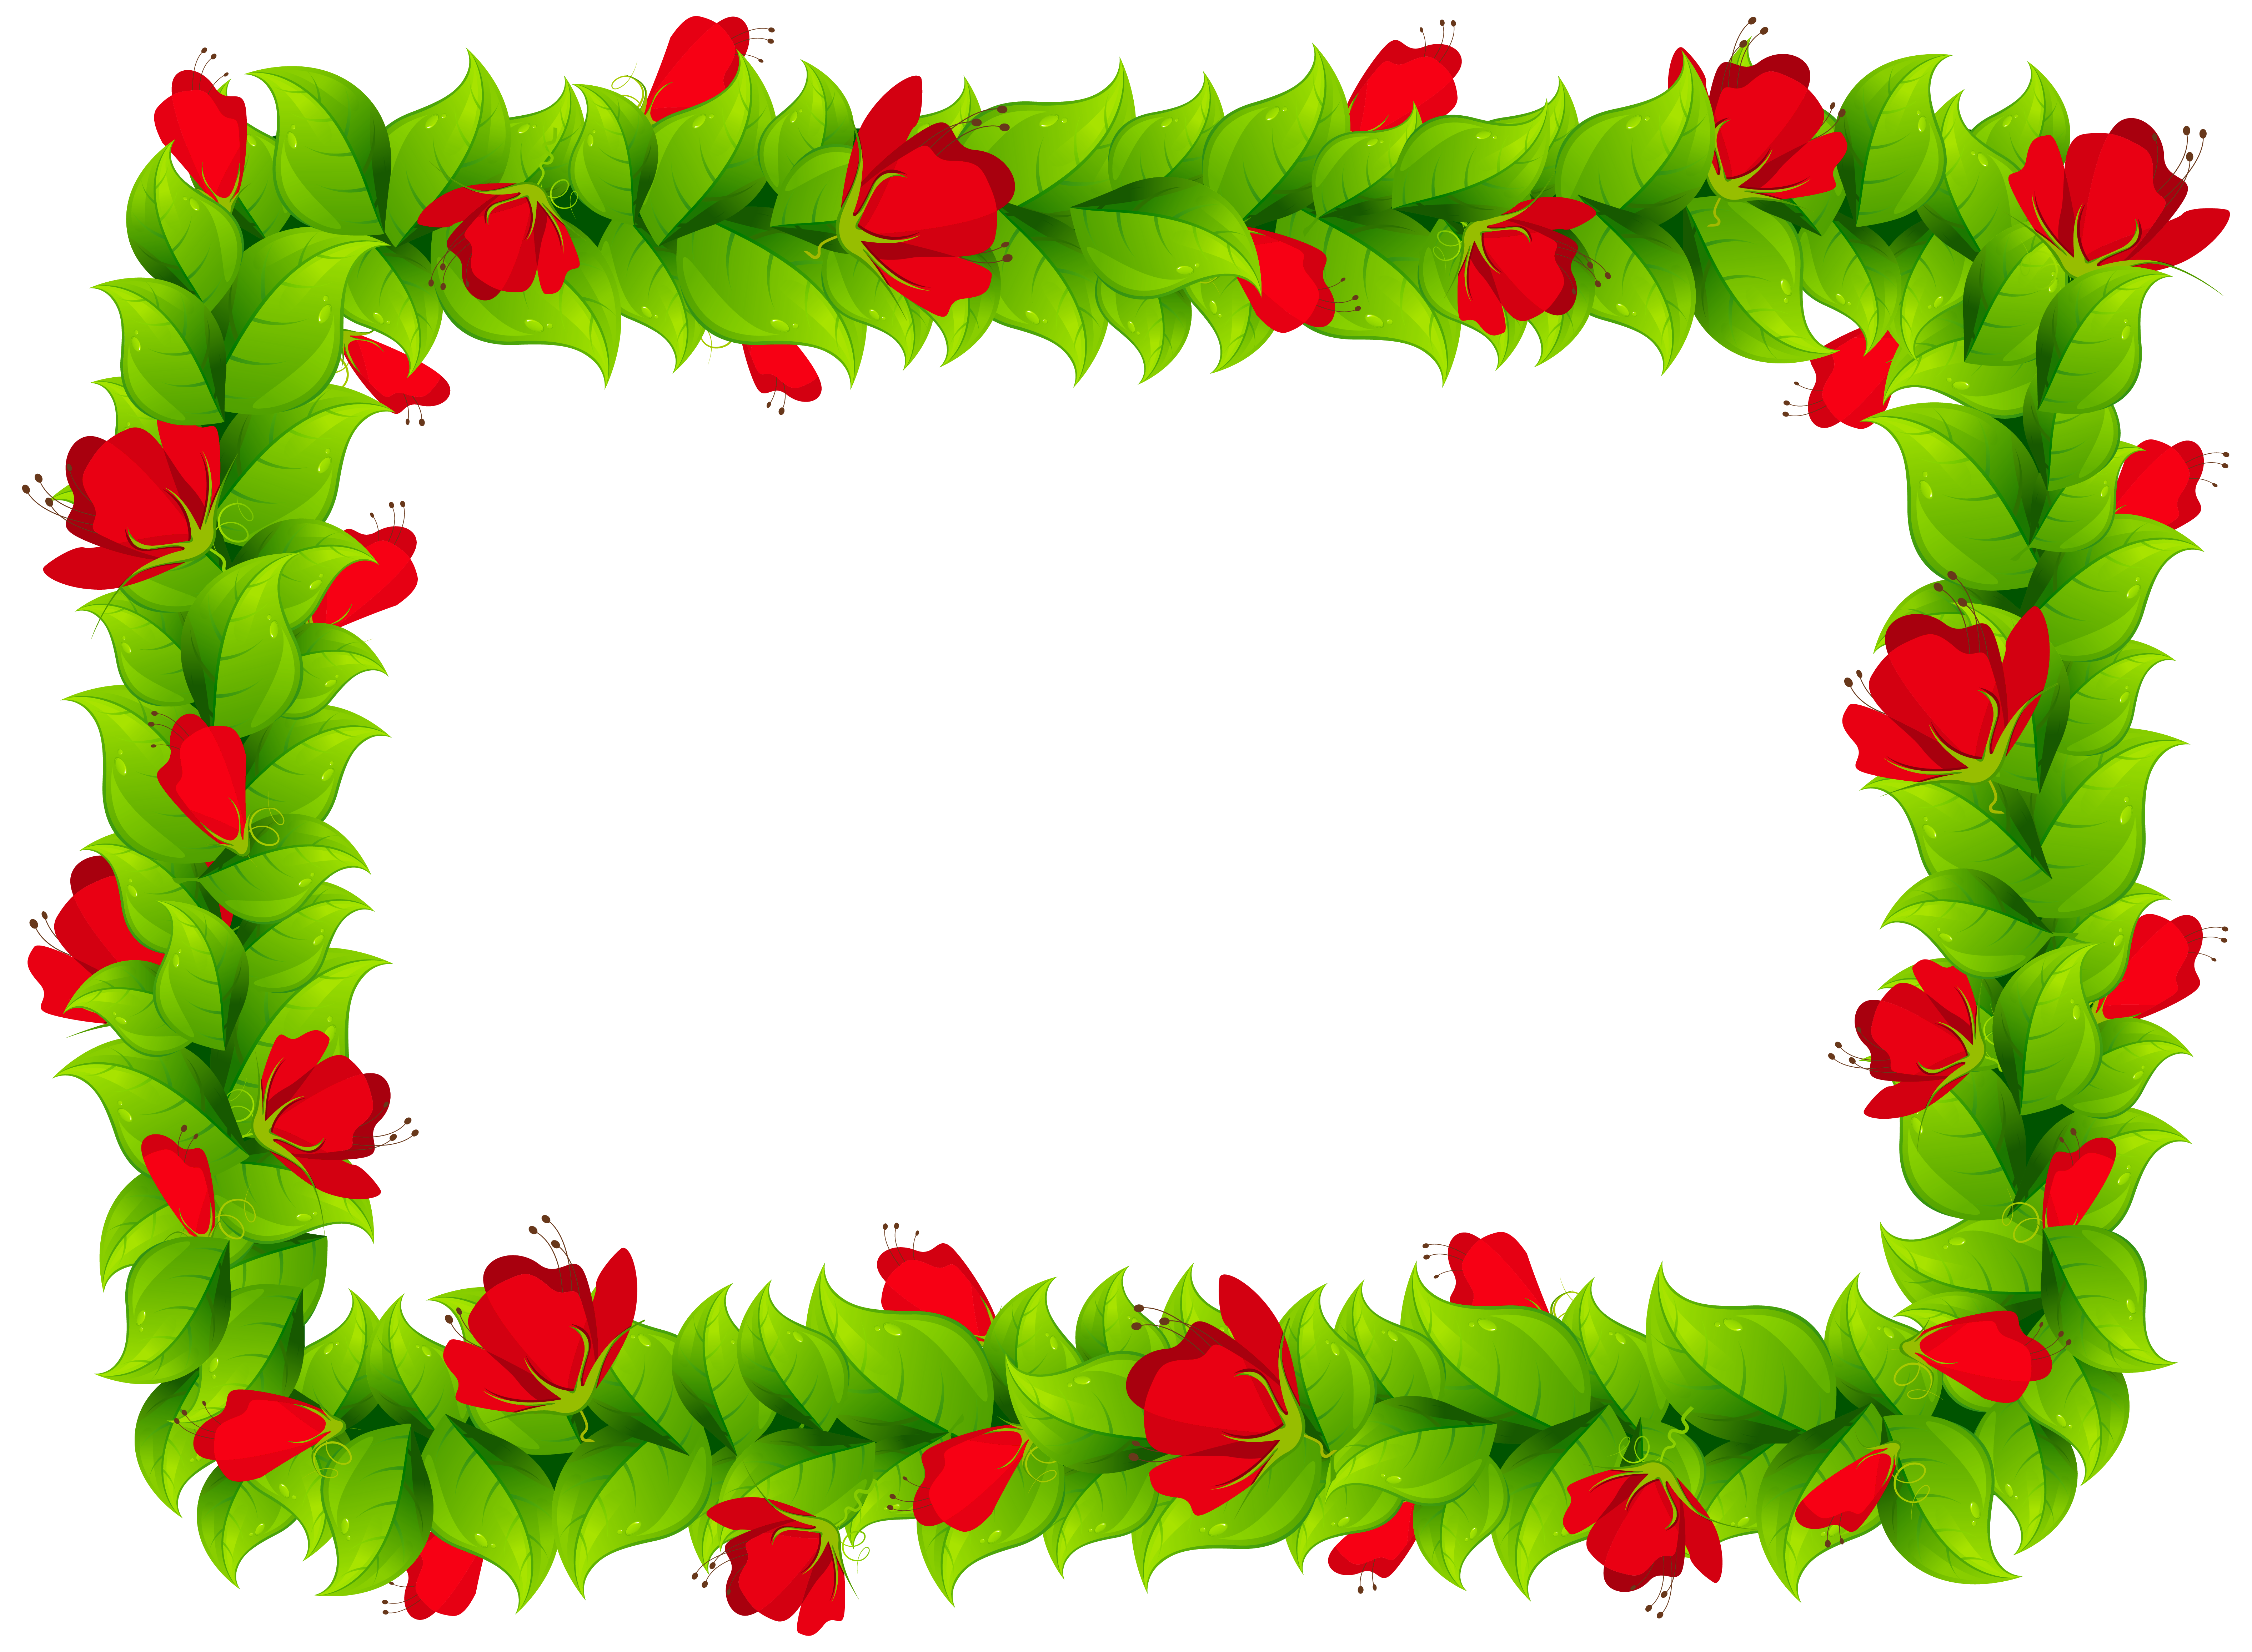 Floral Border Frame Clipart PNG Image (With images